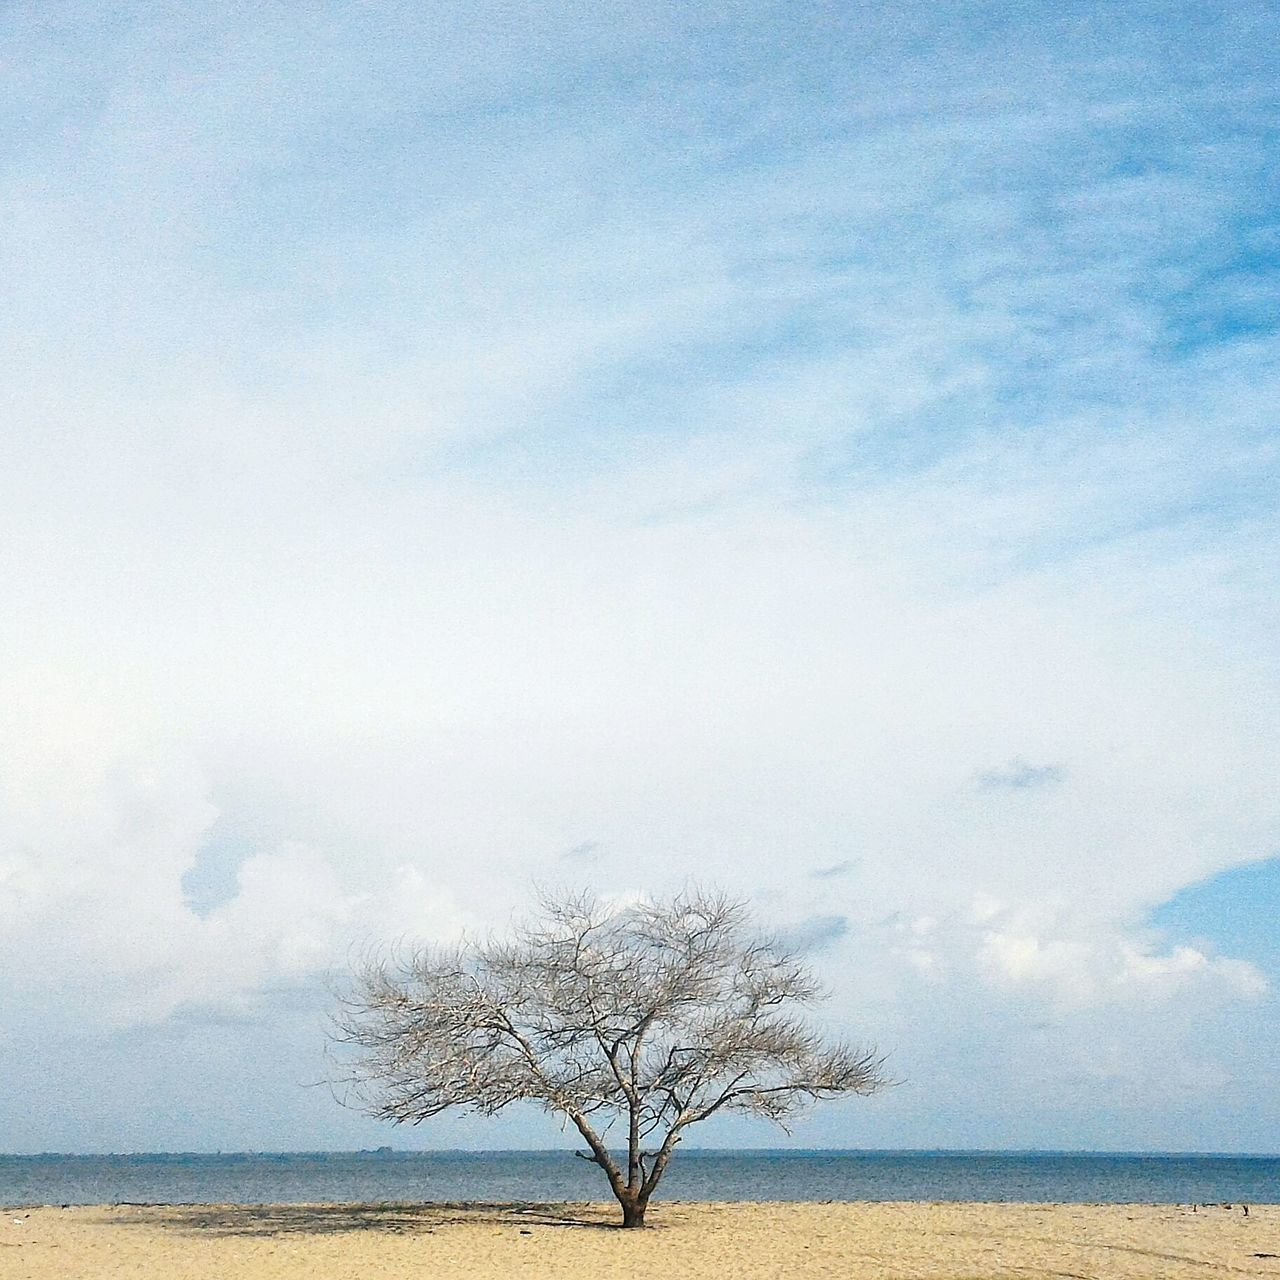 Tree Sky Nature No People Beauty In Nature Outdoors Single Tree Alone Lonely Objects Loneliness Beach Barren Trees Water Day Survival